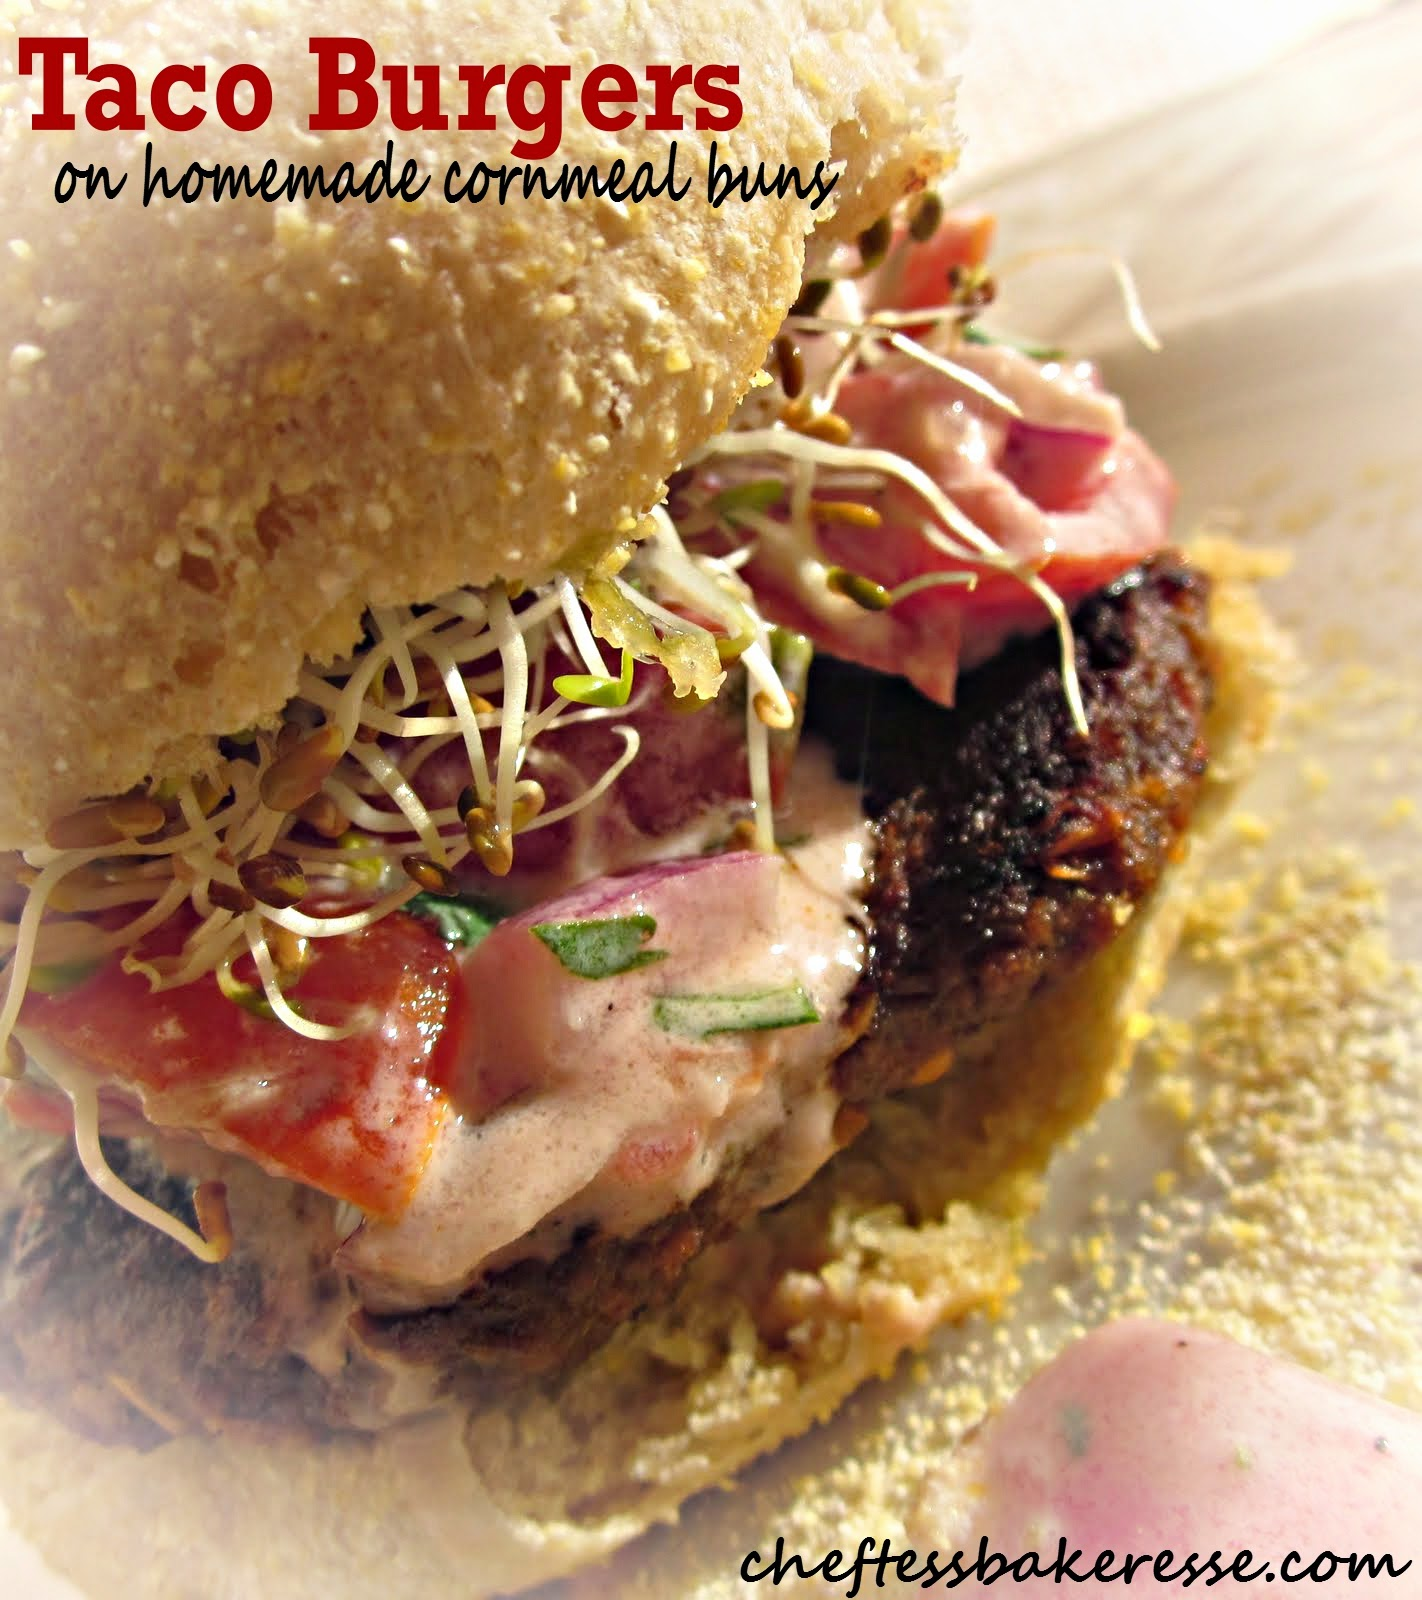 Taco Burgers on Fluffy Cornmeal green chile buns